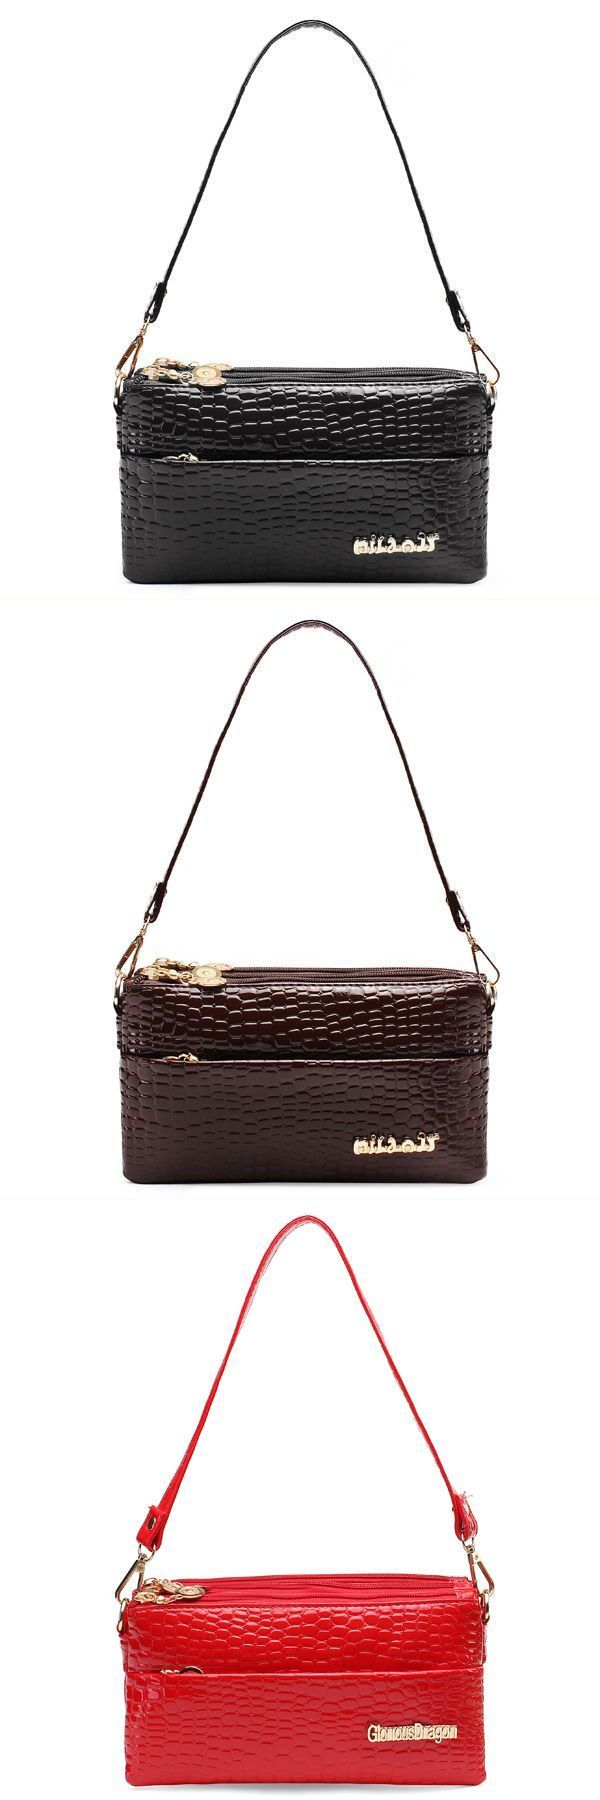 Clutch bags for wedding guests women#8217;s crocodile pu leather handbag  clutch chain shoulder bags #clutch #bags #glasgow #clutch #bags #gumtree #clutch #bags #myer #clutches #bags #how #to #make